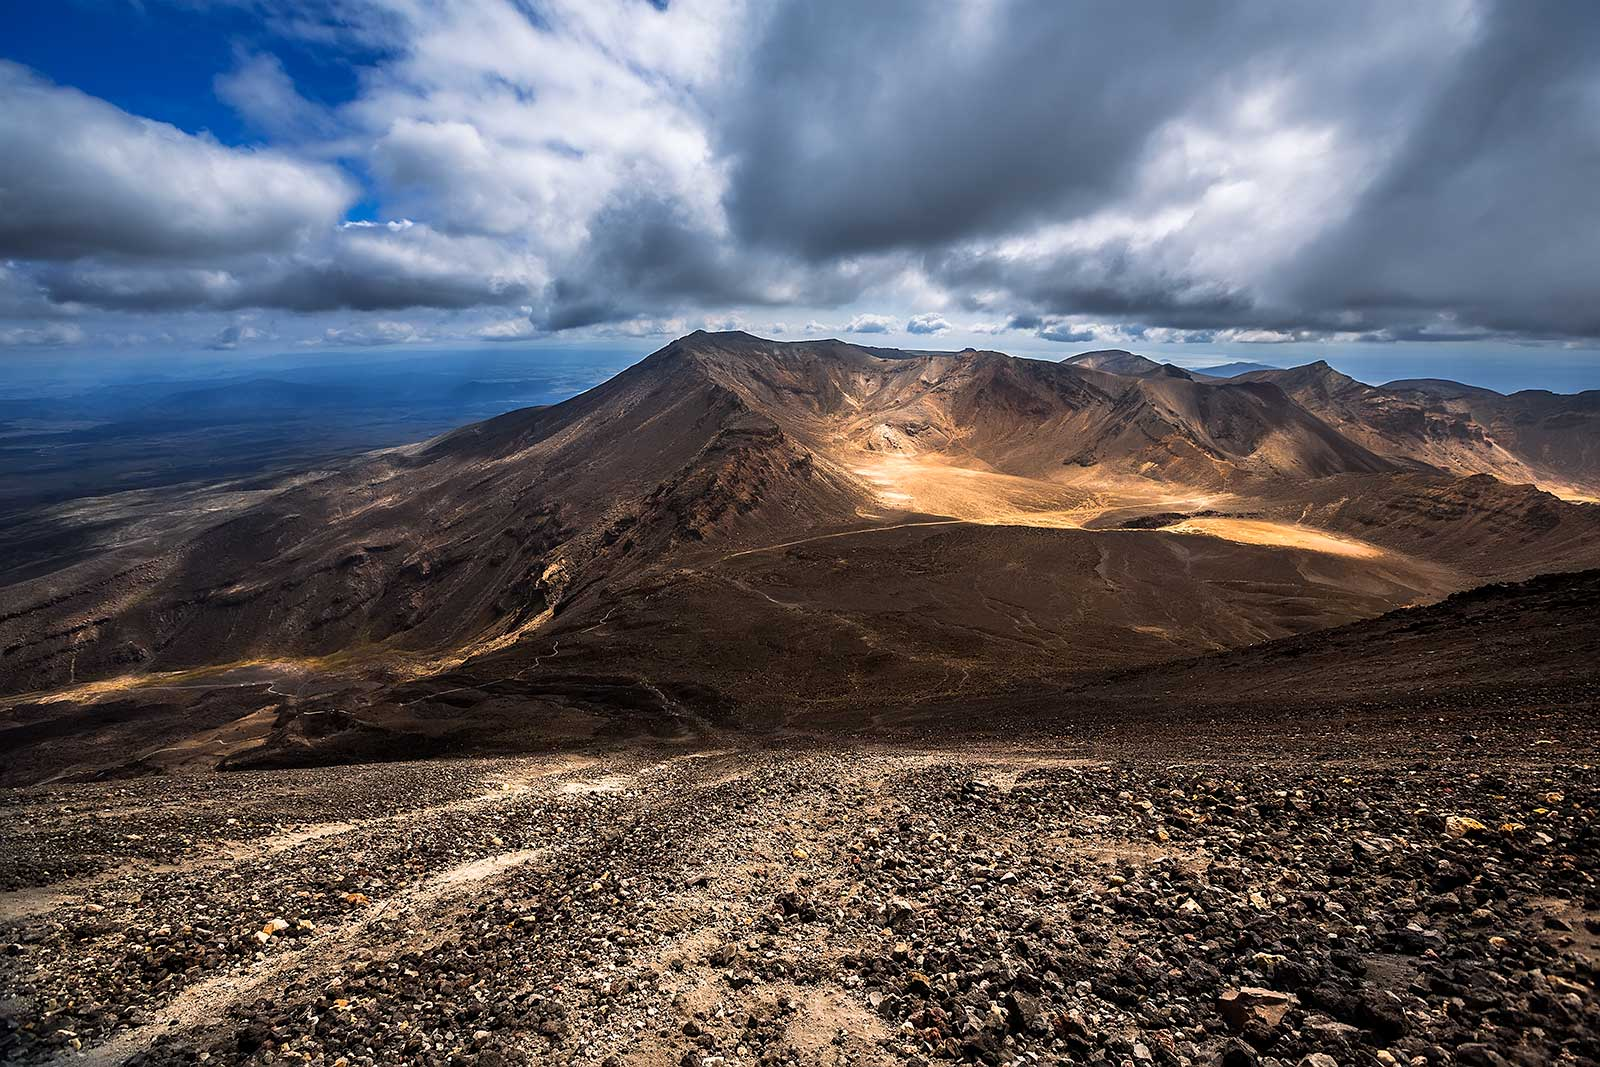 The view from the top of Mt. Ngauruhoe during the Tongariro Alpine Crossing, New Zealand.